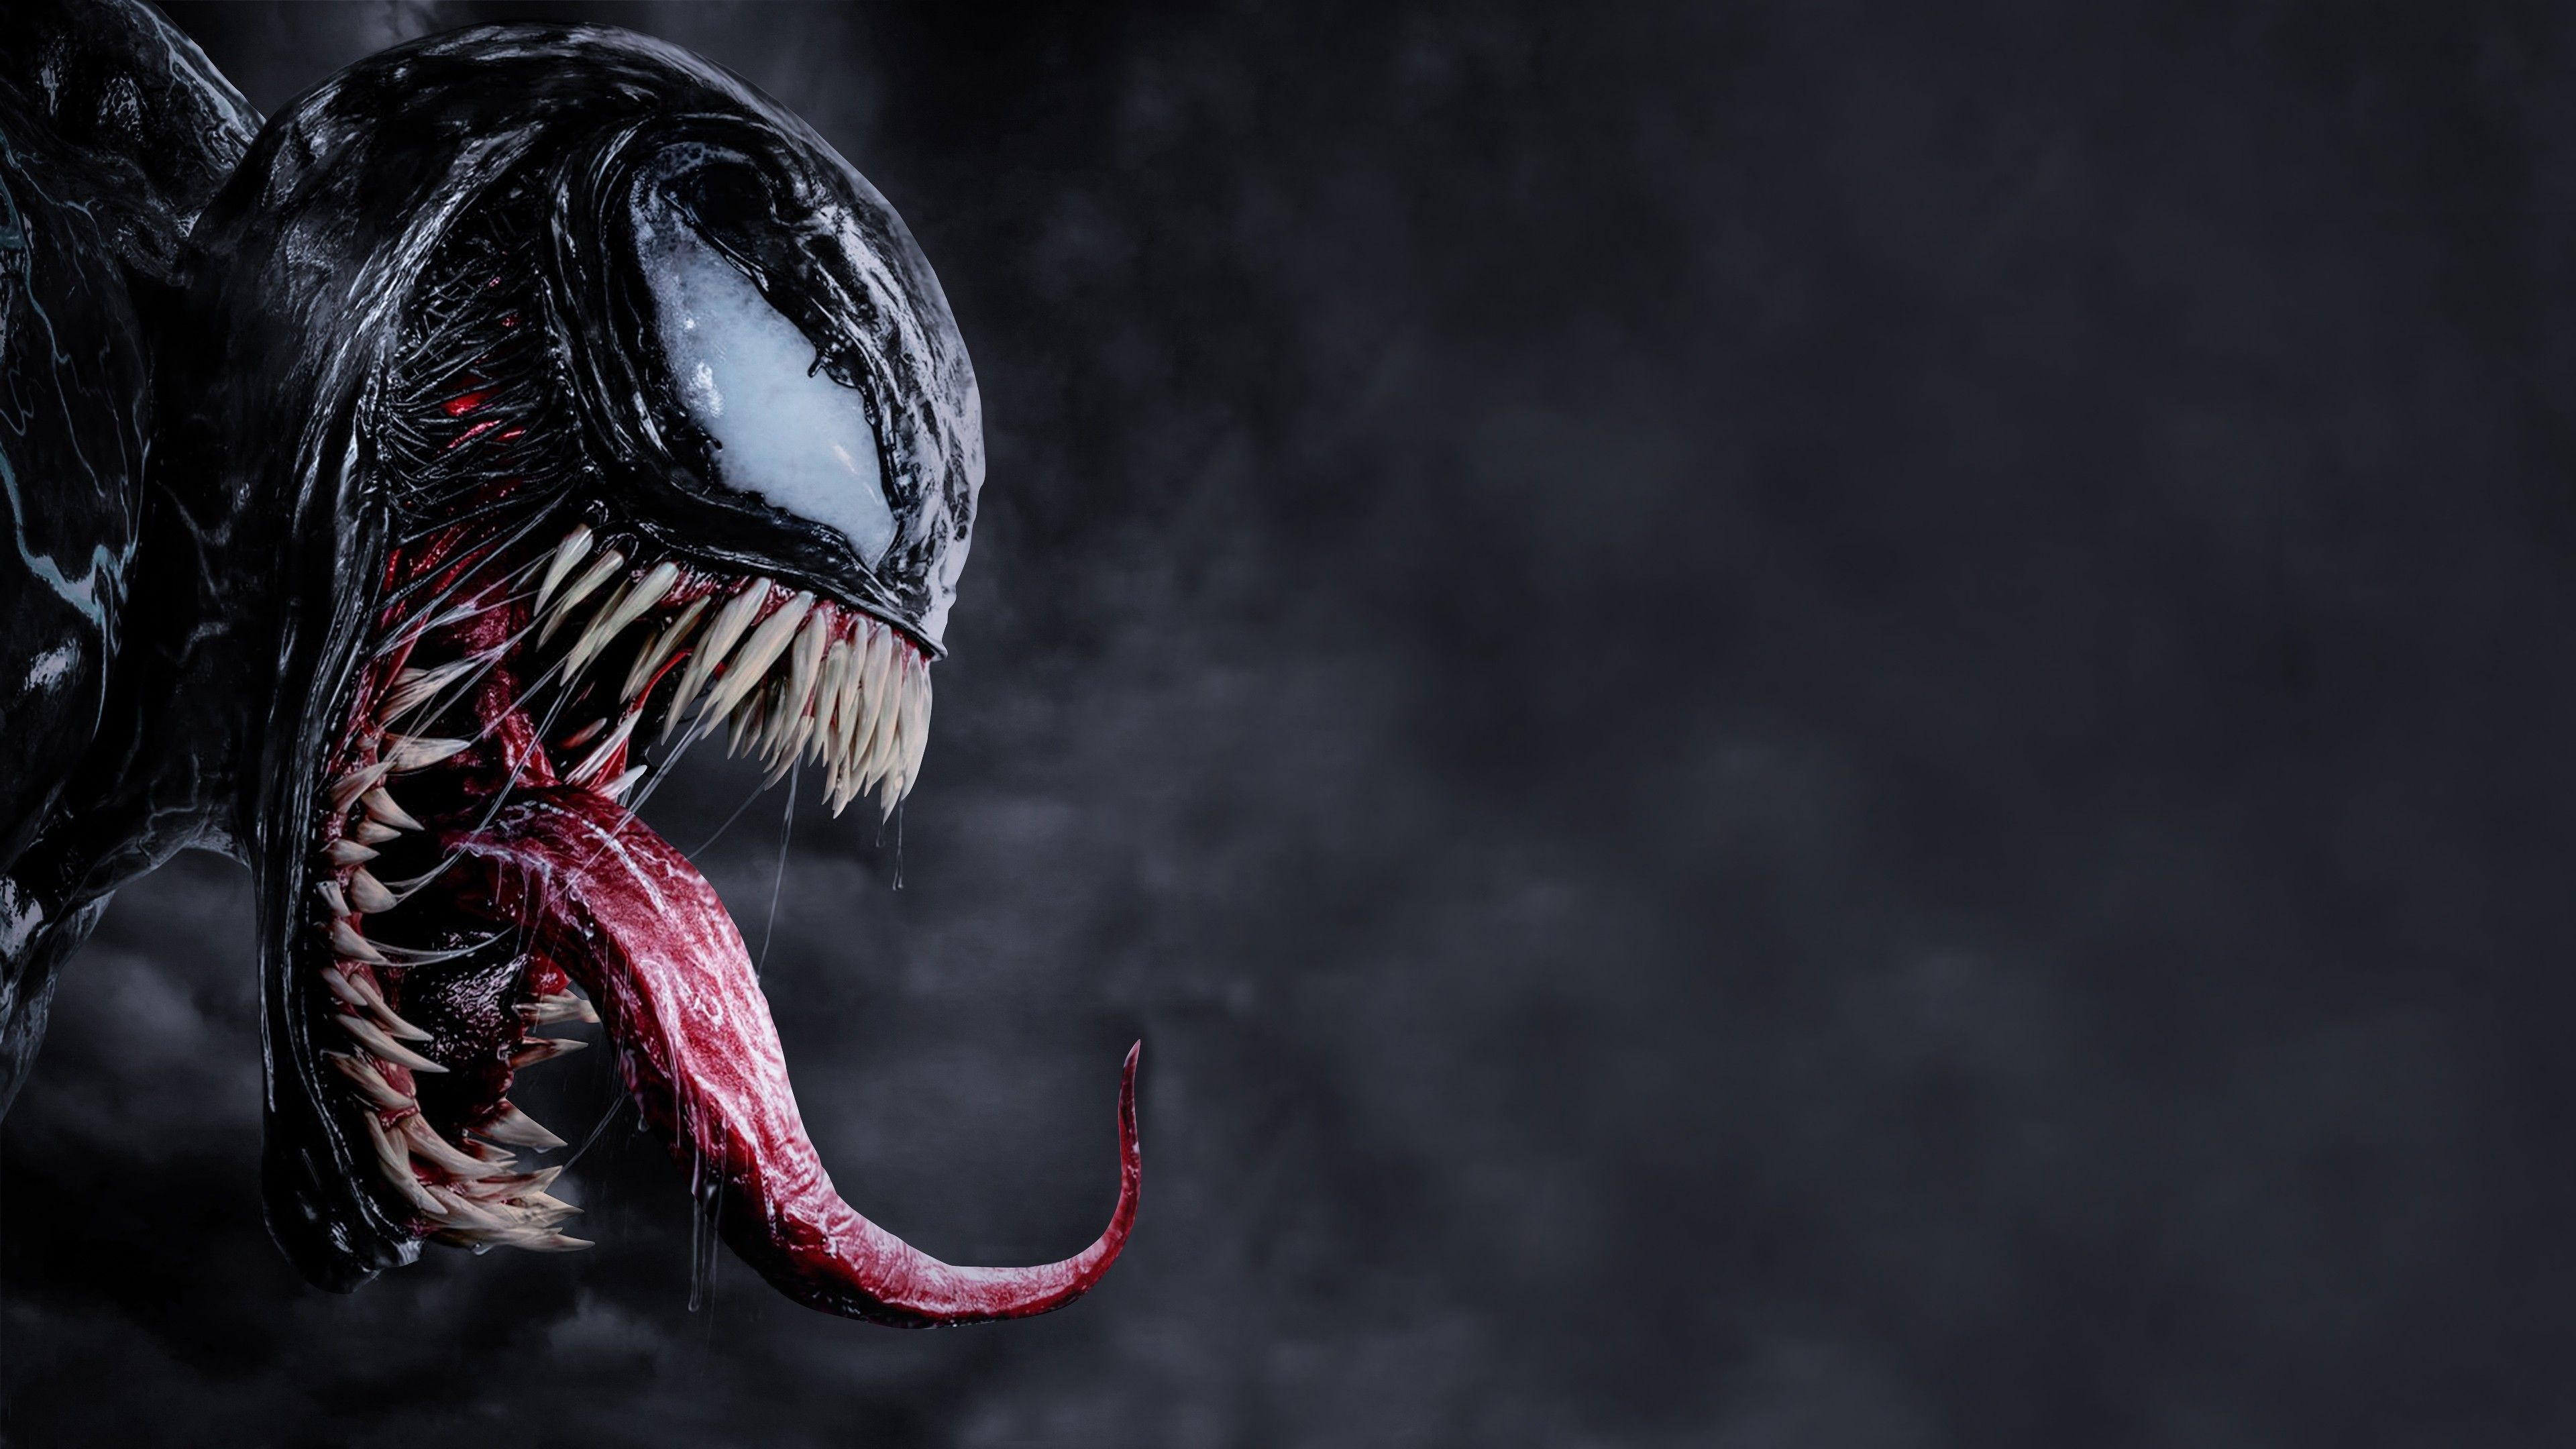 Venom Wallpaper Android 4k Iphone Wallpaper01 In 2020 Venom Movie Android Wallpaper Tom Hardy